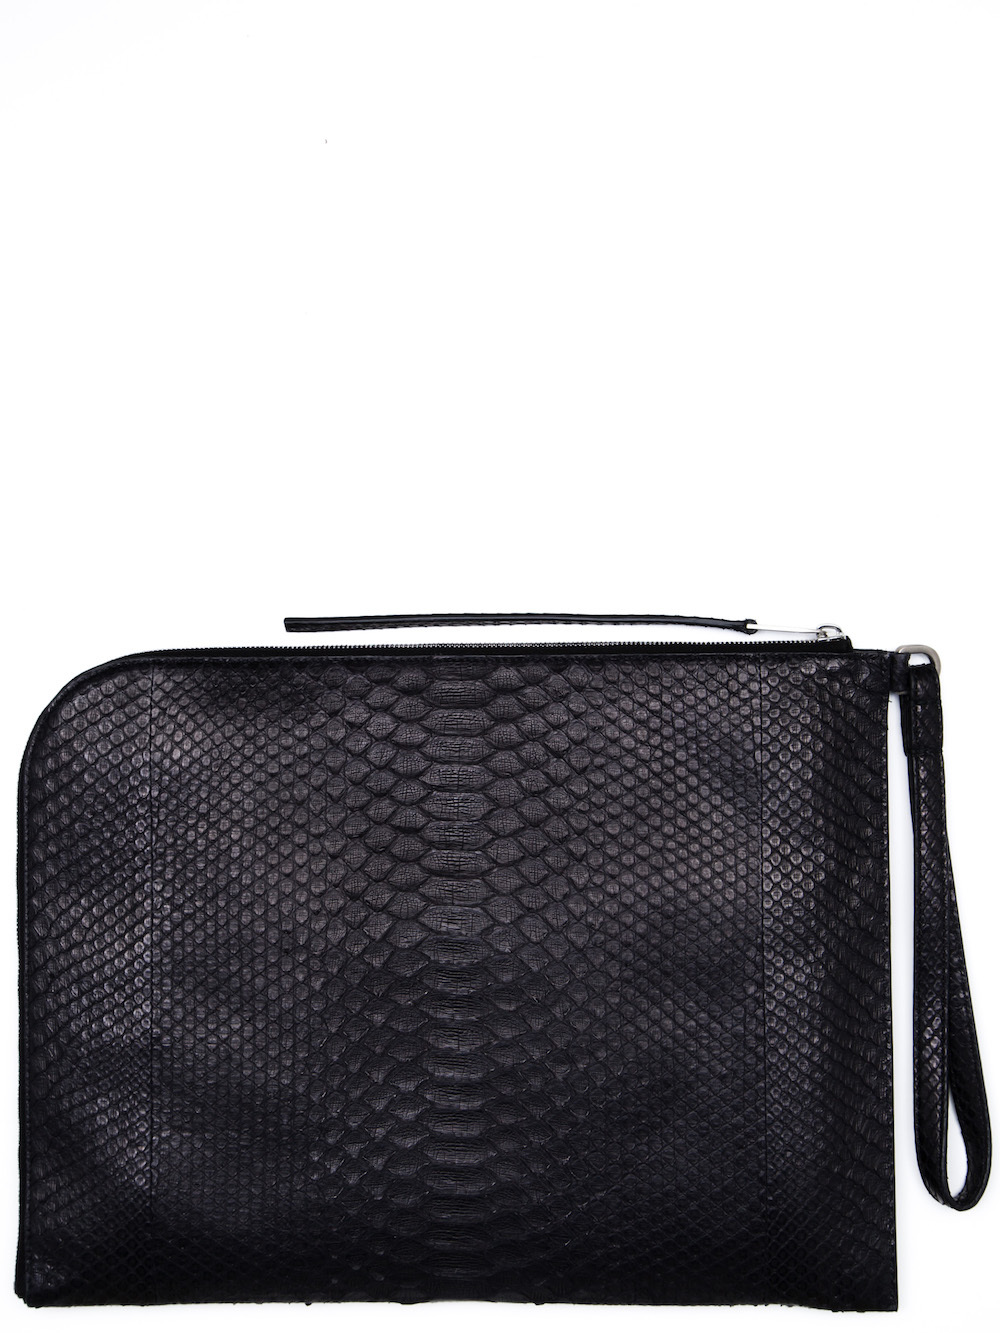 RICK OWENS LARGE ZIPPED POUCH IN BLACK PYTHON